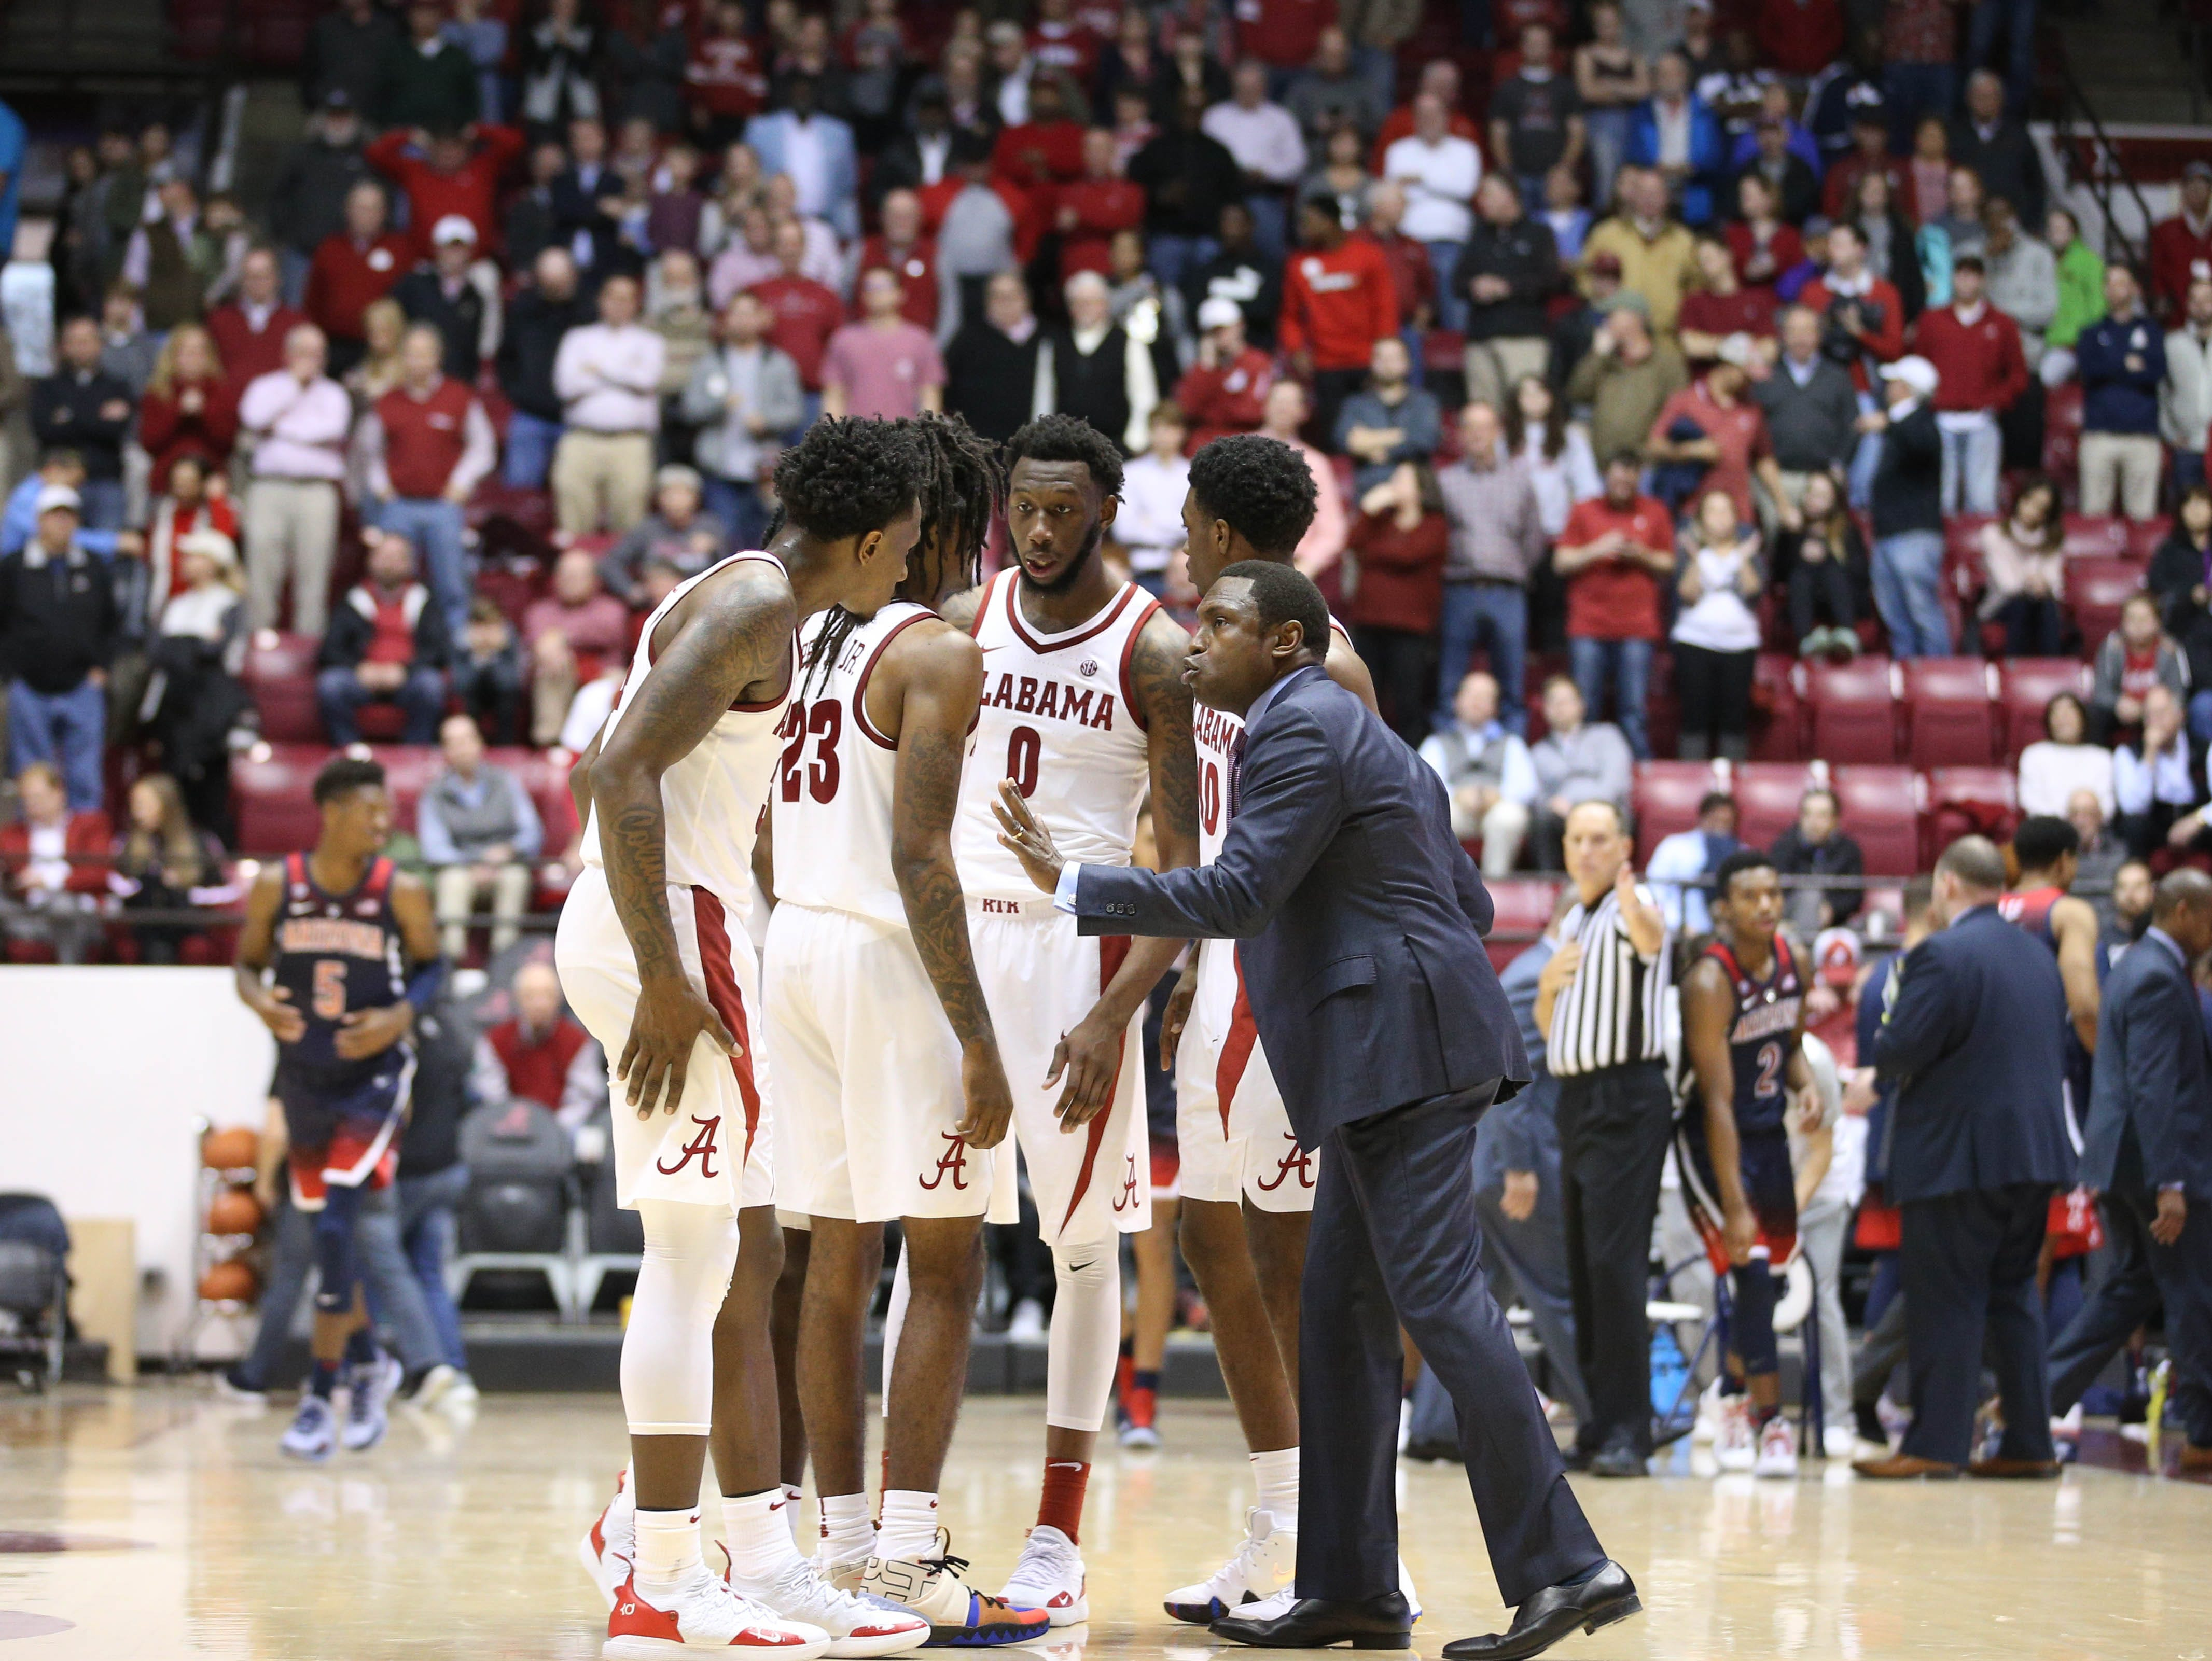 Dec 9, 2018; Tuscaloosa, AL, USA; Alabama Crimson Tide head coach Avery Johnson talks to his team during a timeout during the second half against the Arizona Wildcats at Coleman Coliseum. Mandatory Credit: Marvin Gentry-USA TODAY Sports